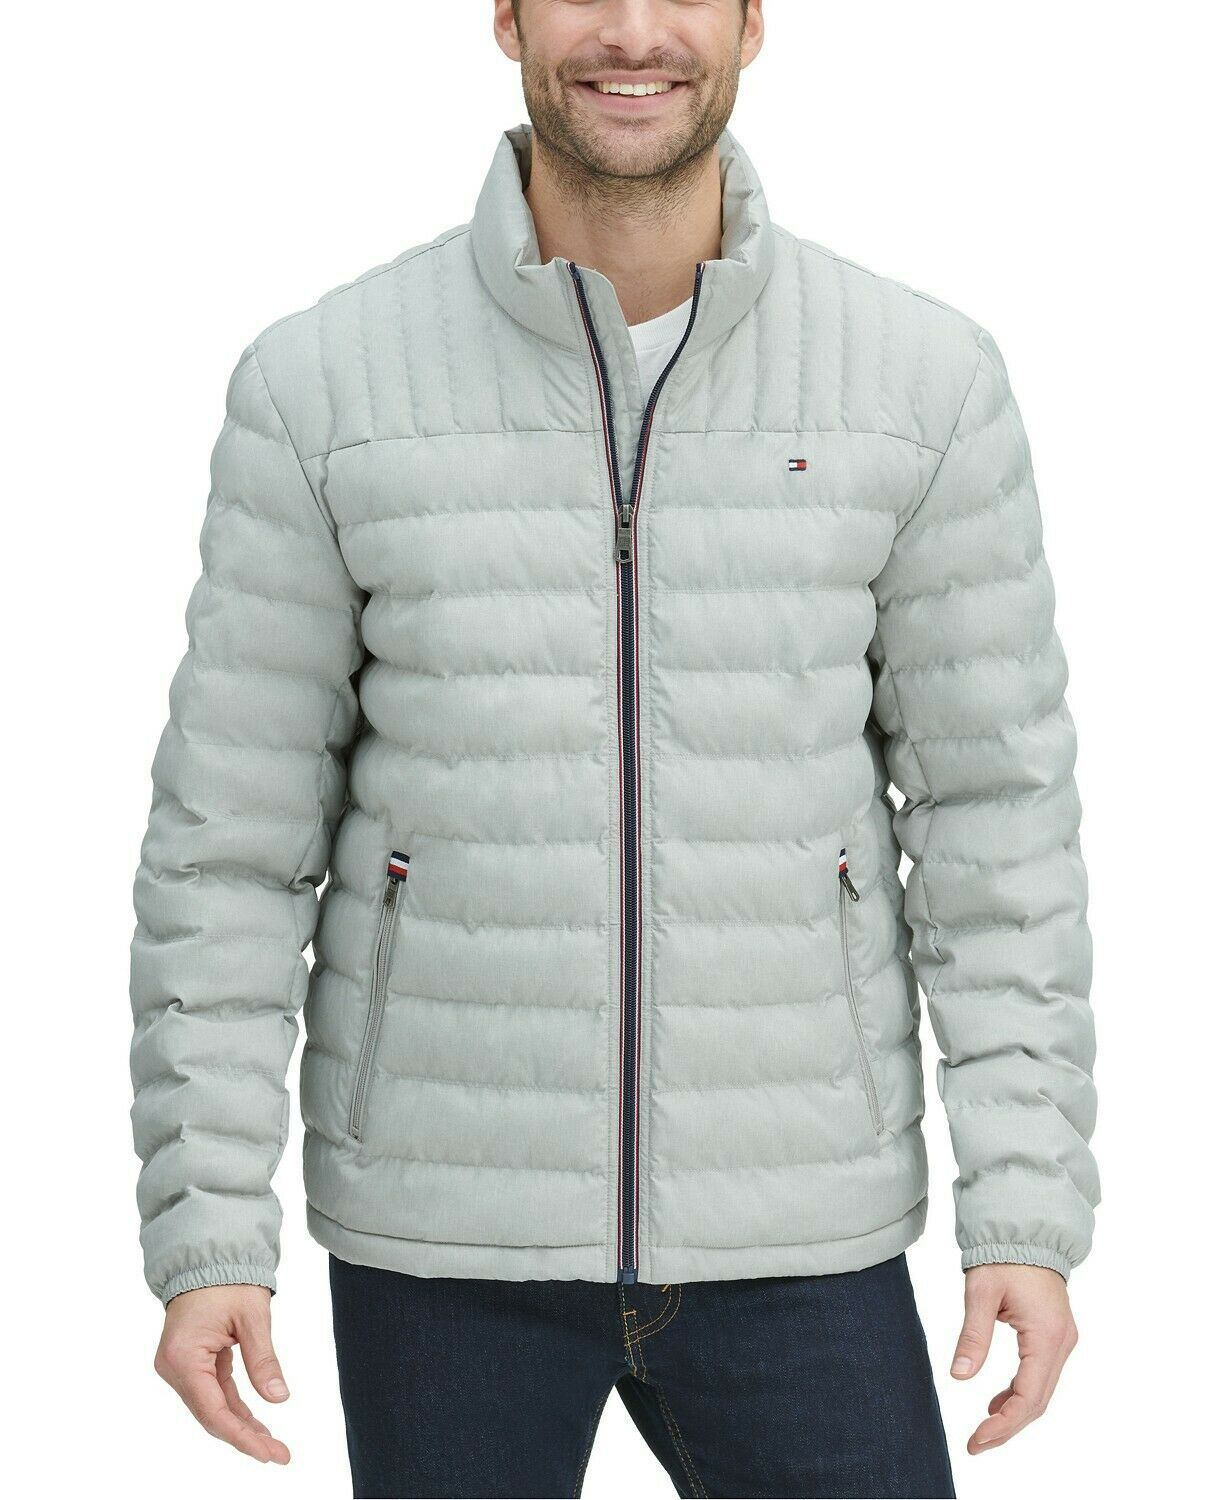 Tommy Hilfiger Men's Ultra Loft Packable Puffer Jacket Heather Grey